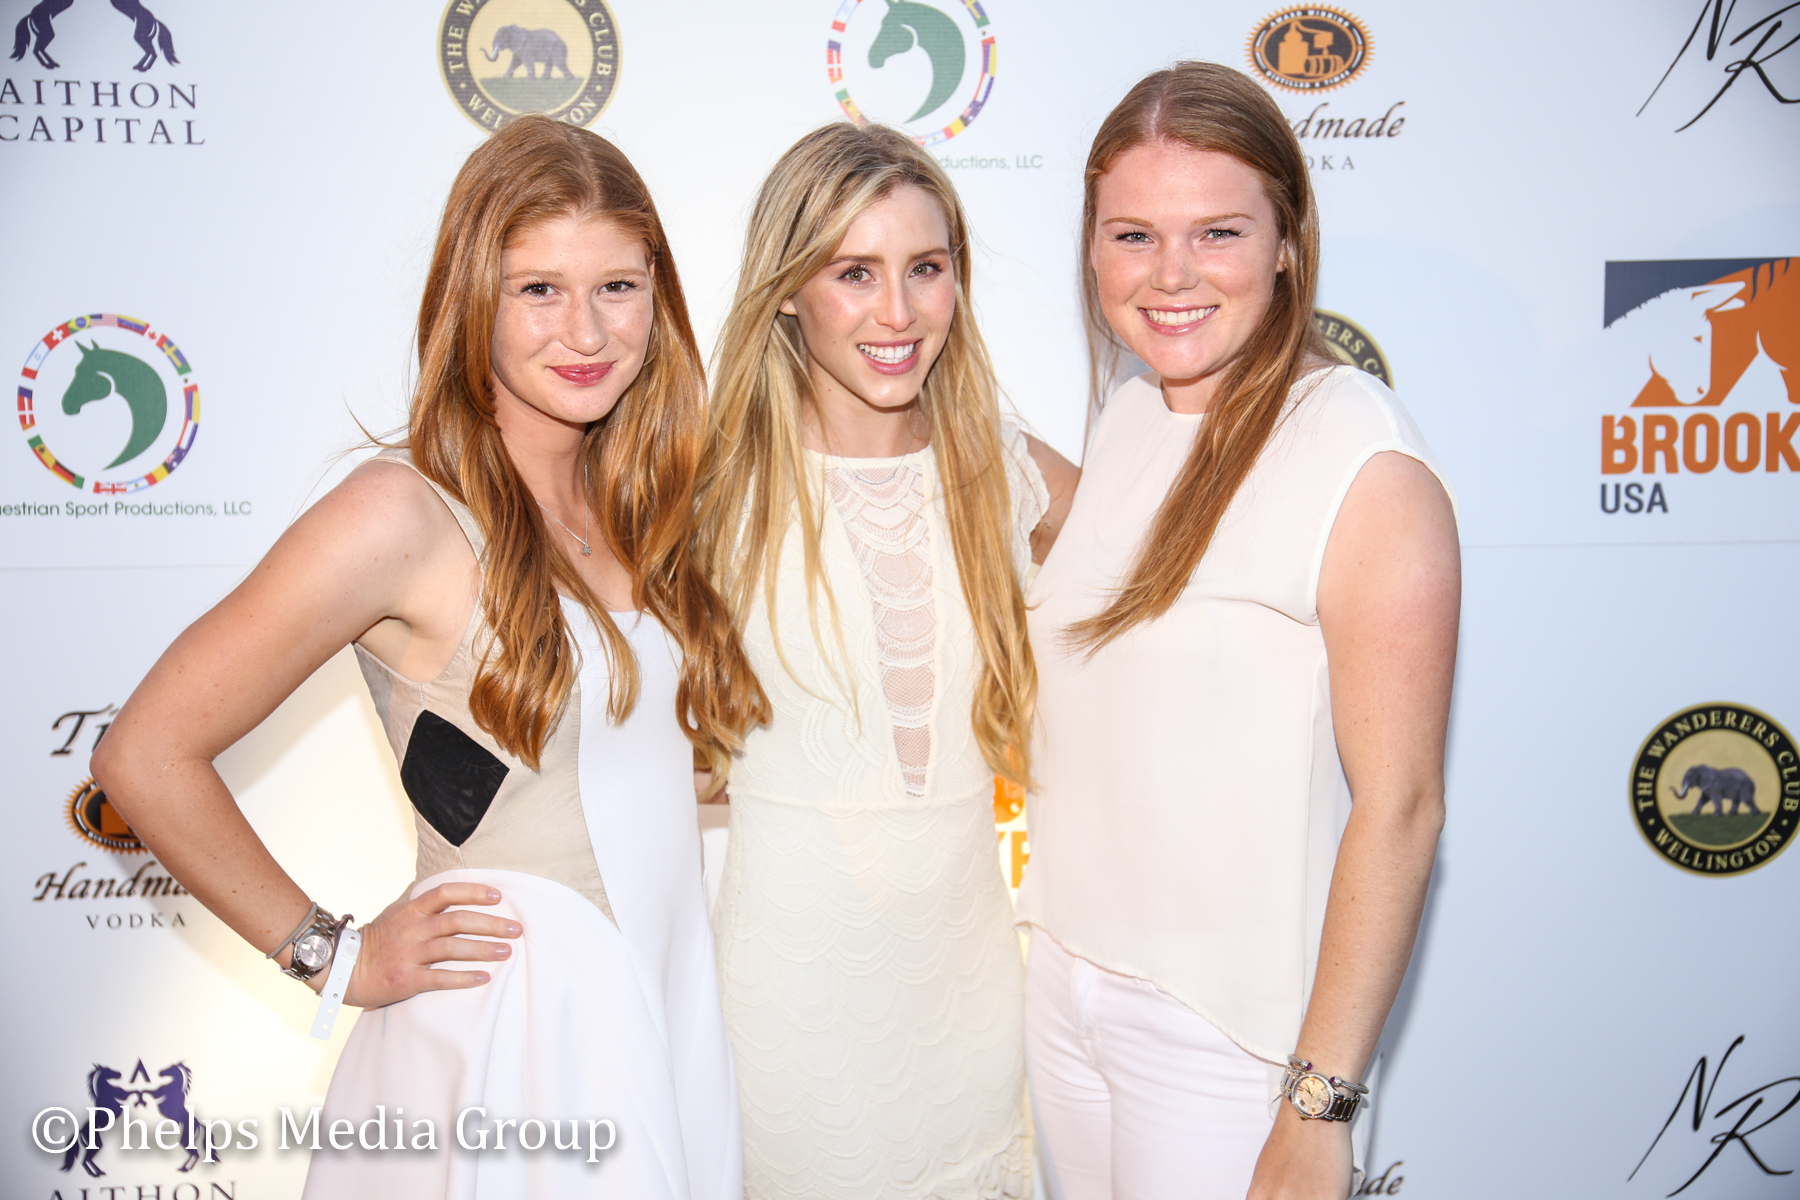 Jennifer Gates Paige Bellissimo and Taylor Alexander; Nic Roldan's 2nd Annual Sunset Polo & White Party, FL, by Phelps Media (2).jpg